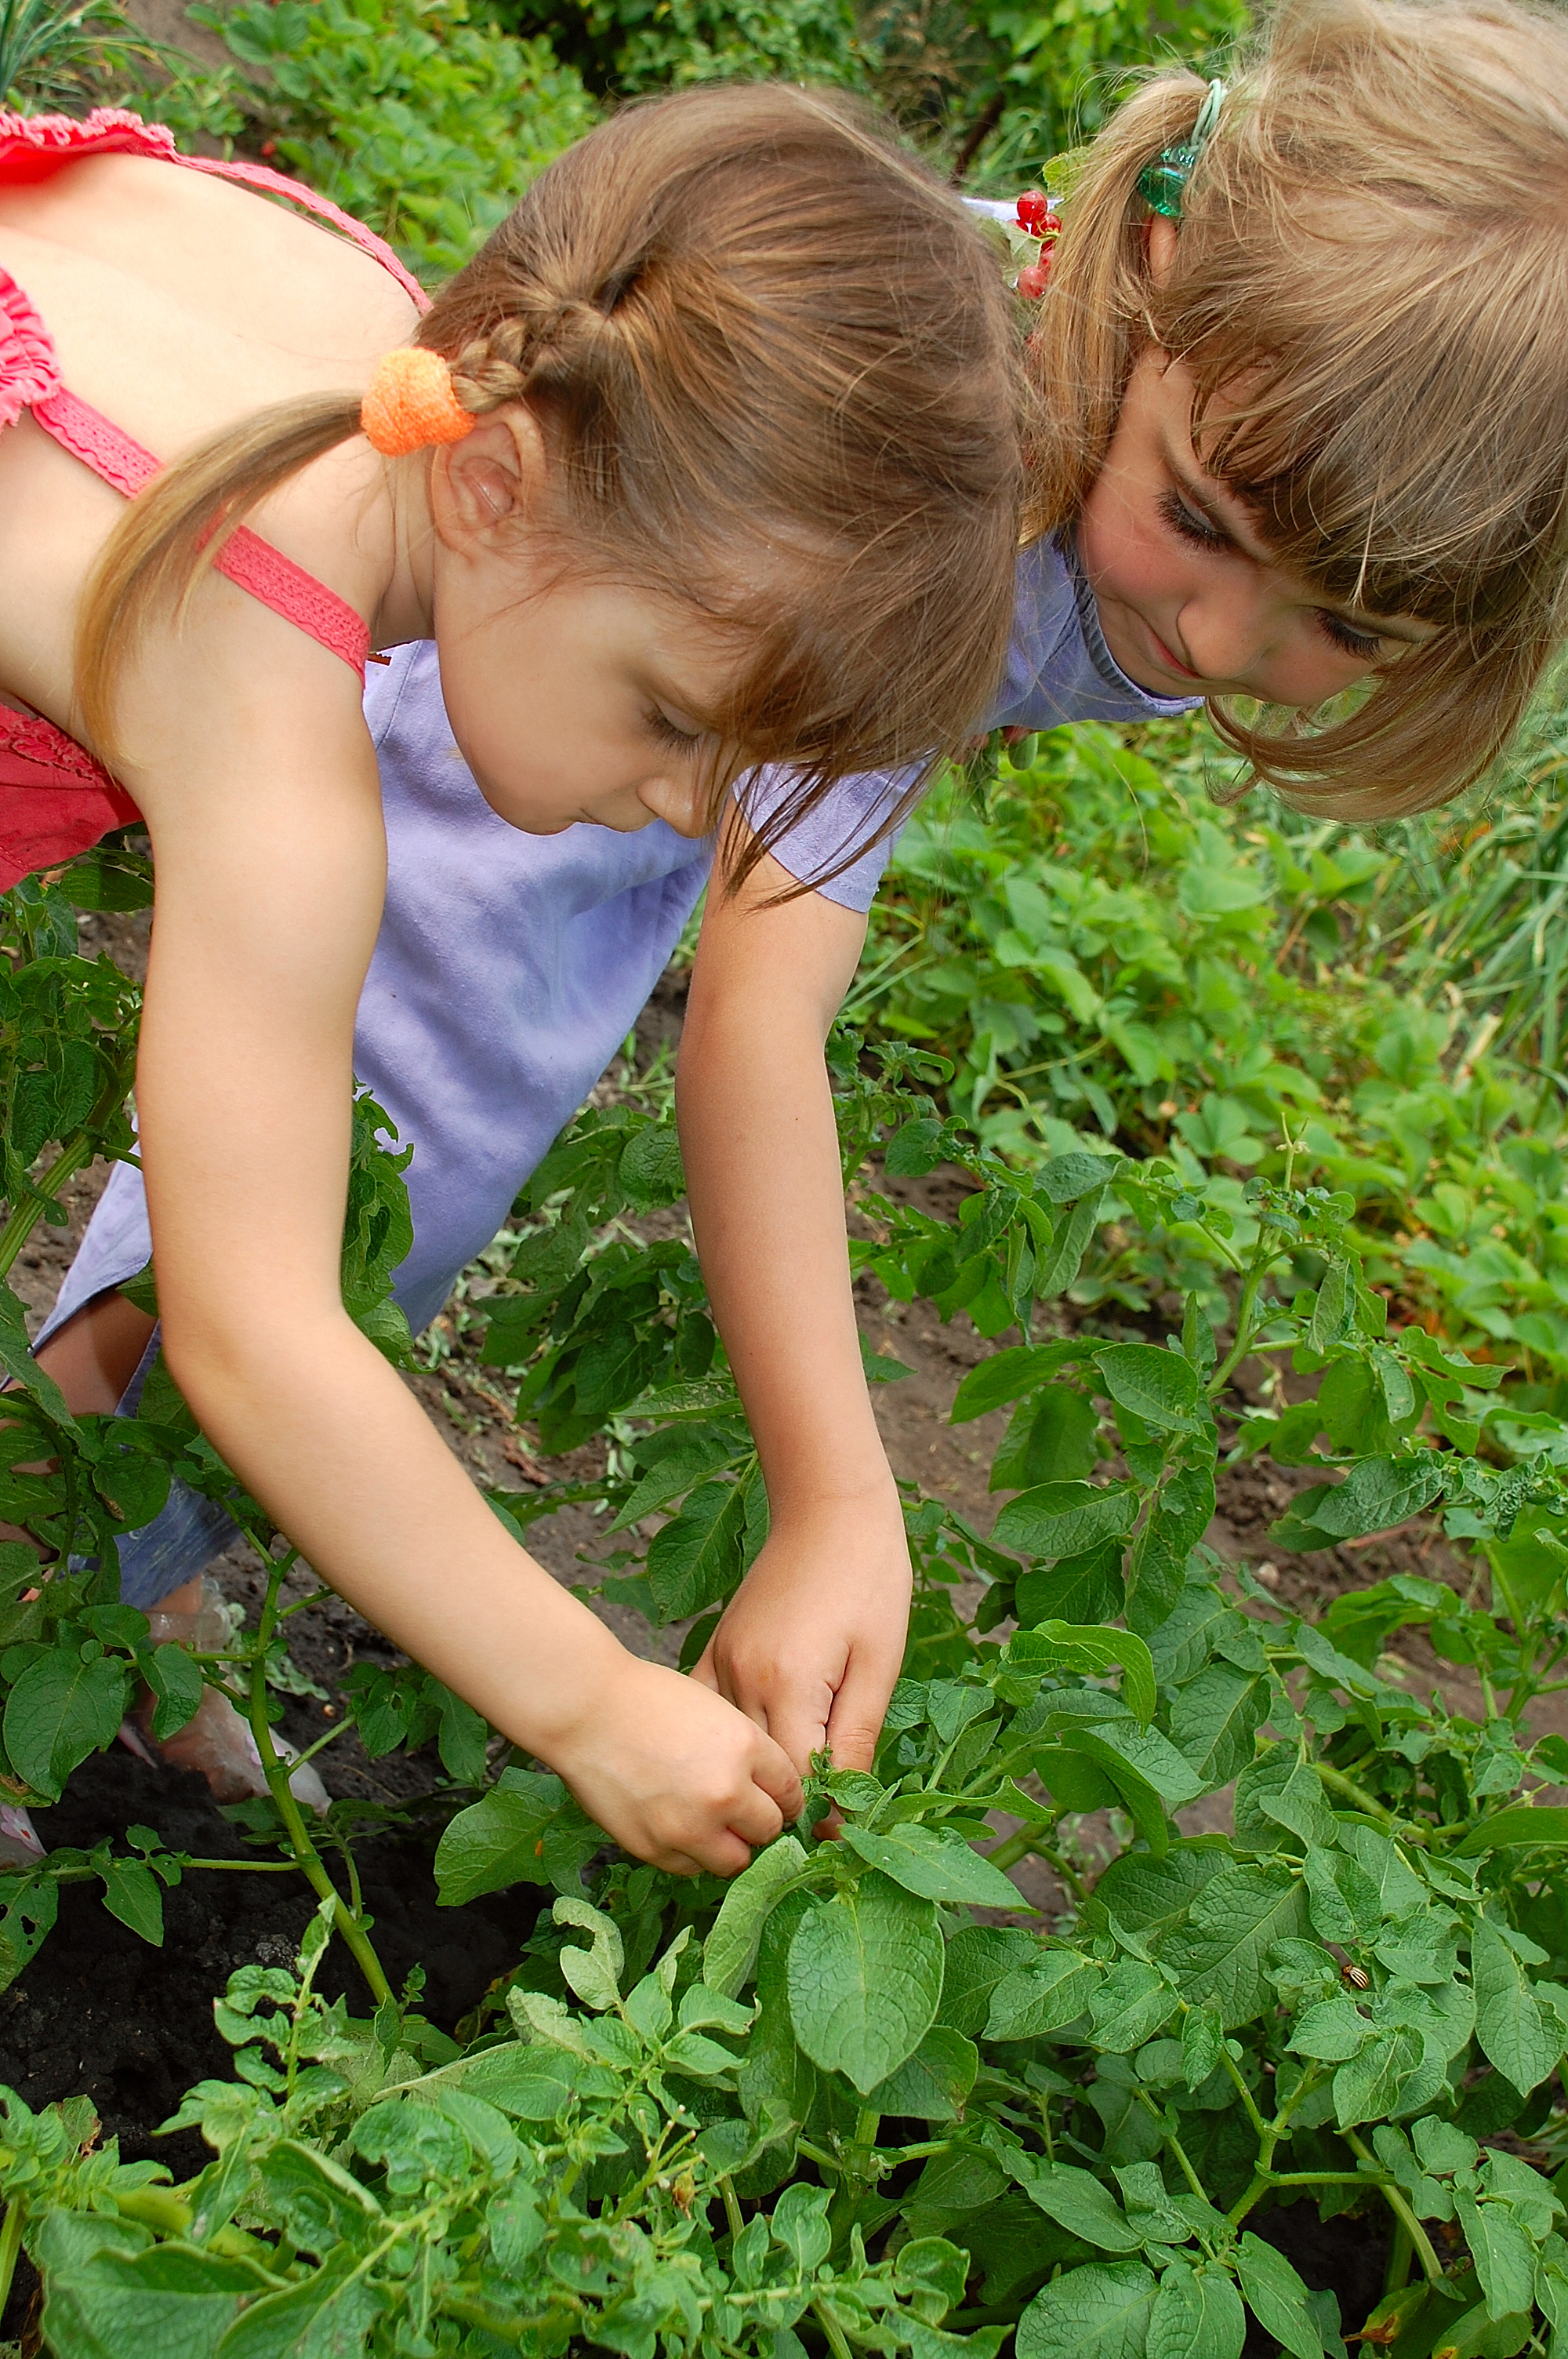 two-girls-gardening-5482068.jpg